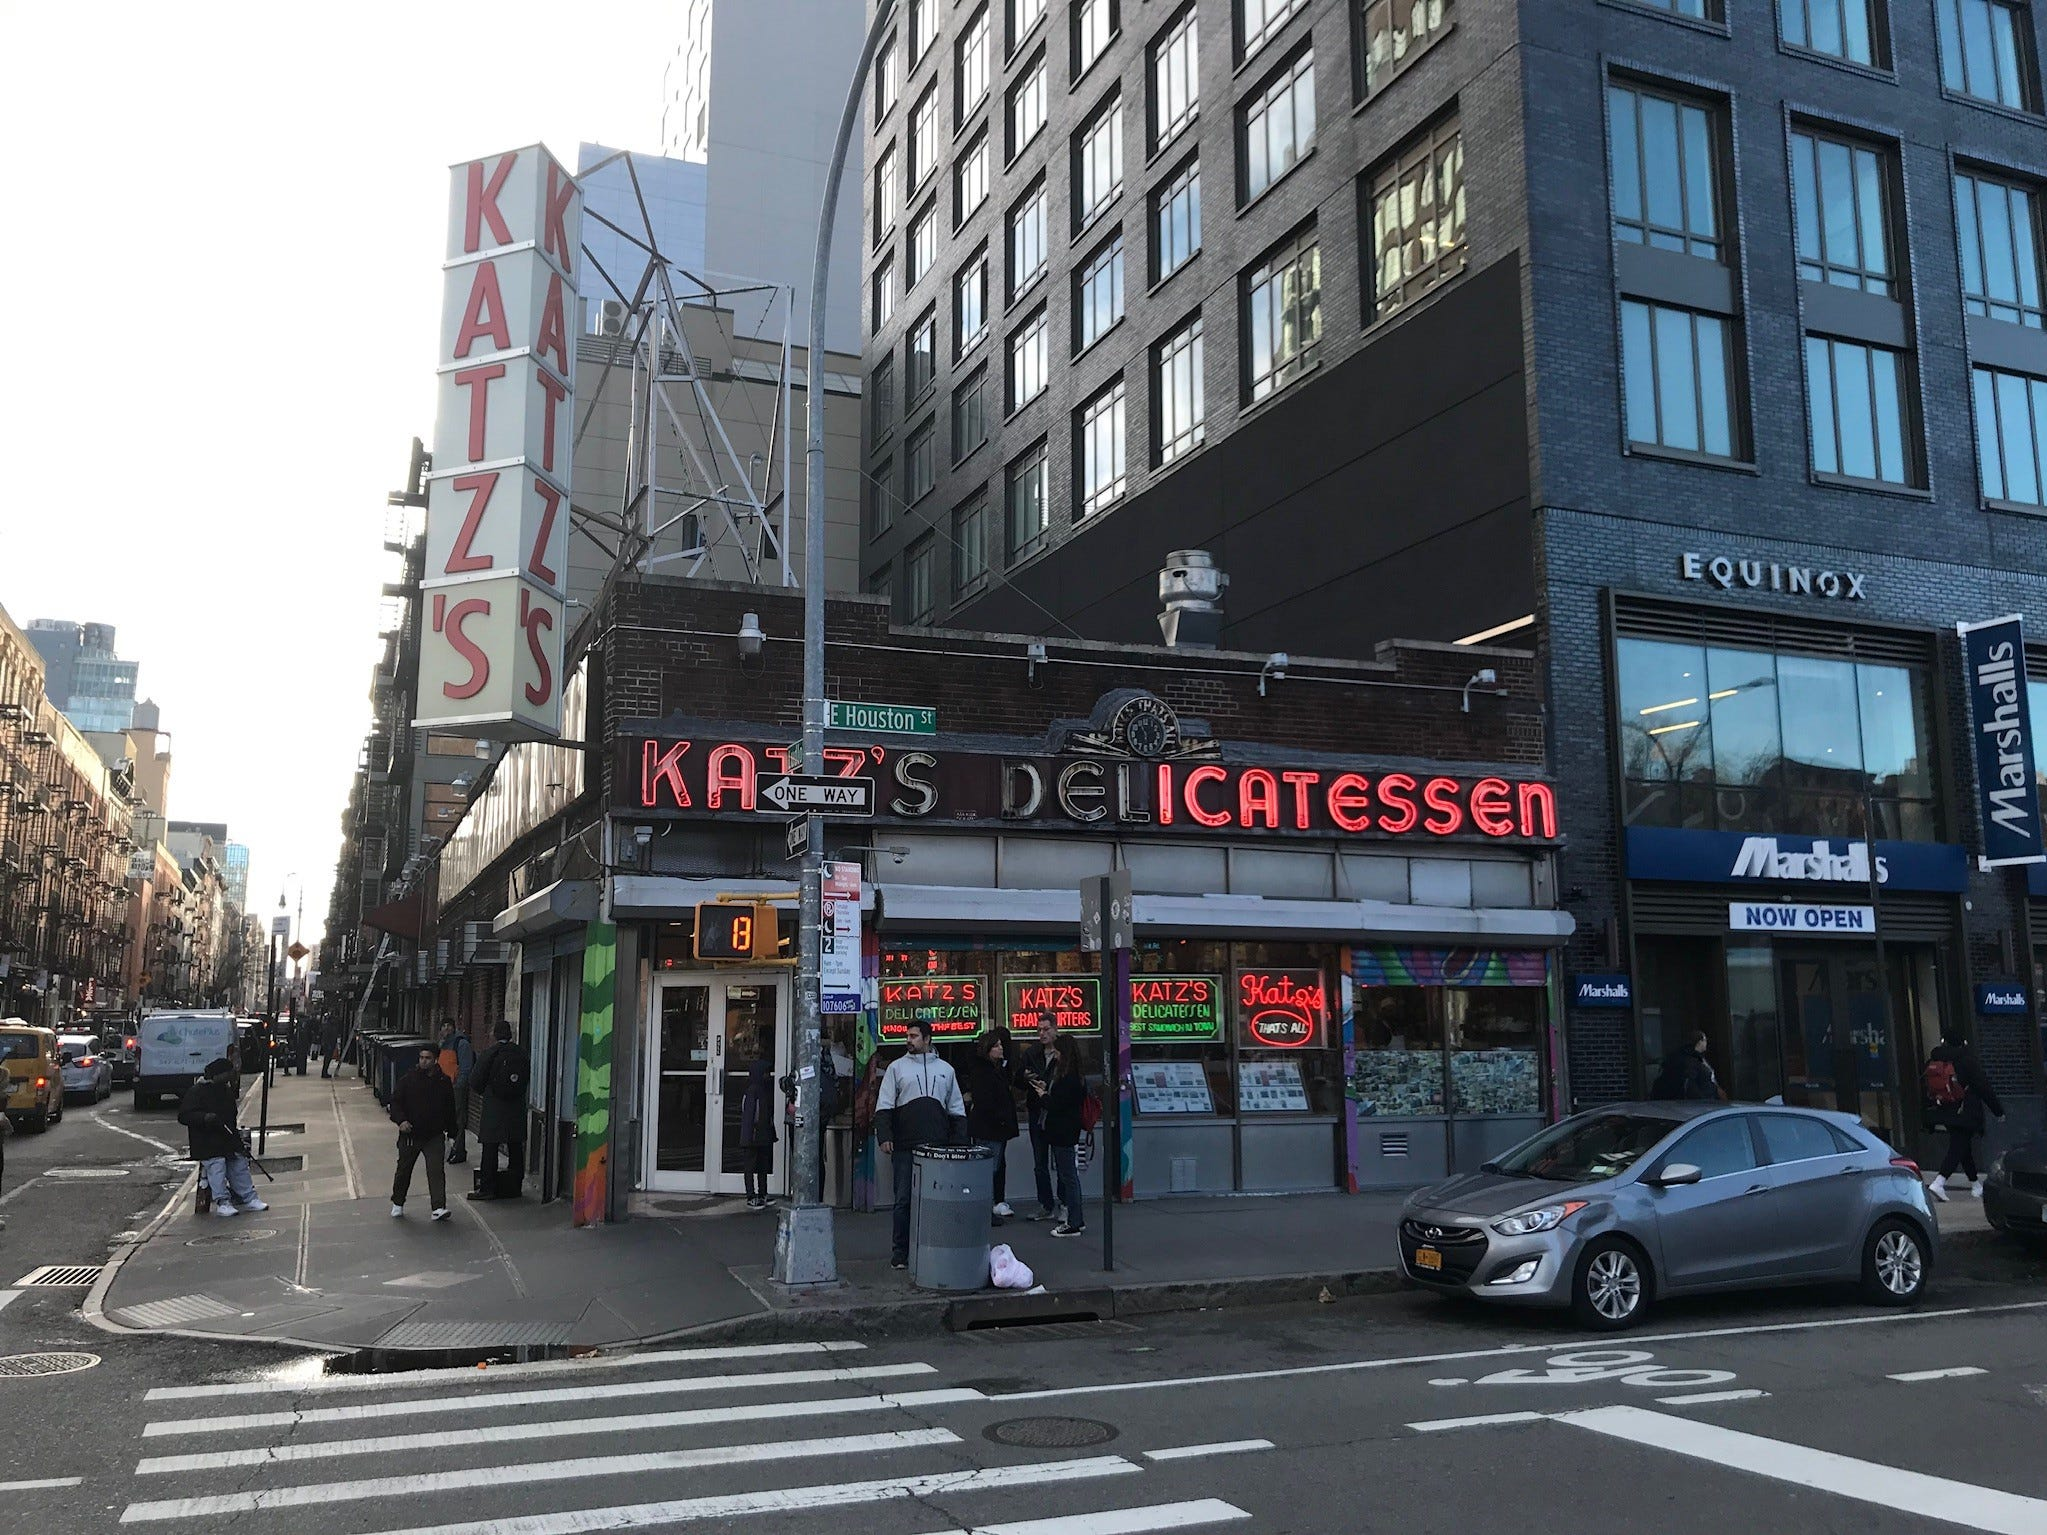 A true Big Apple icon, Katz's Deli has occupied a corner on Manhattan's Lower East Side for the past 131 years.